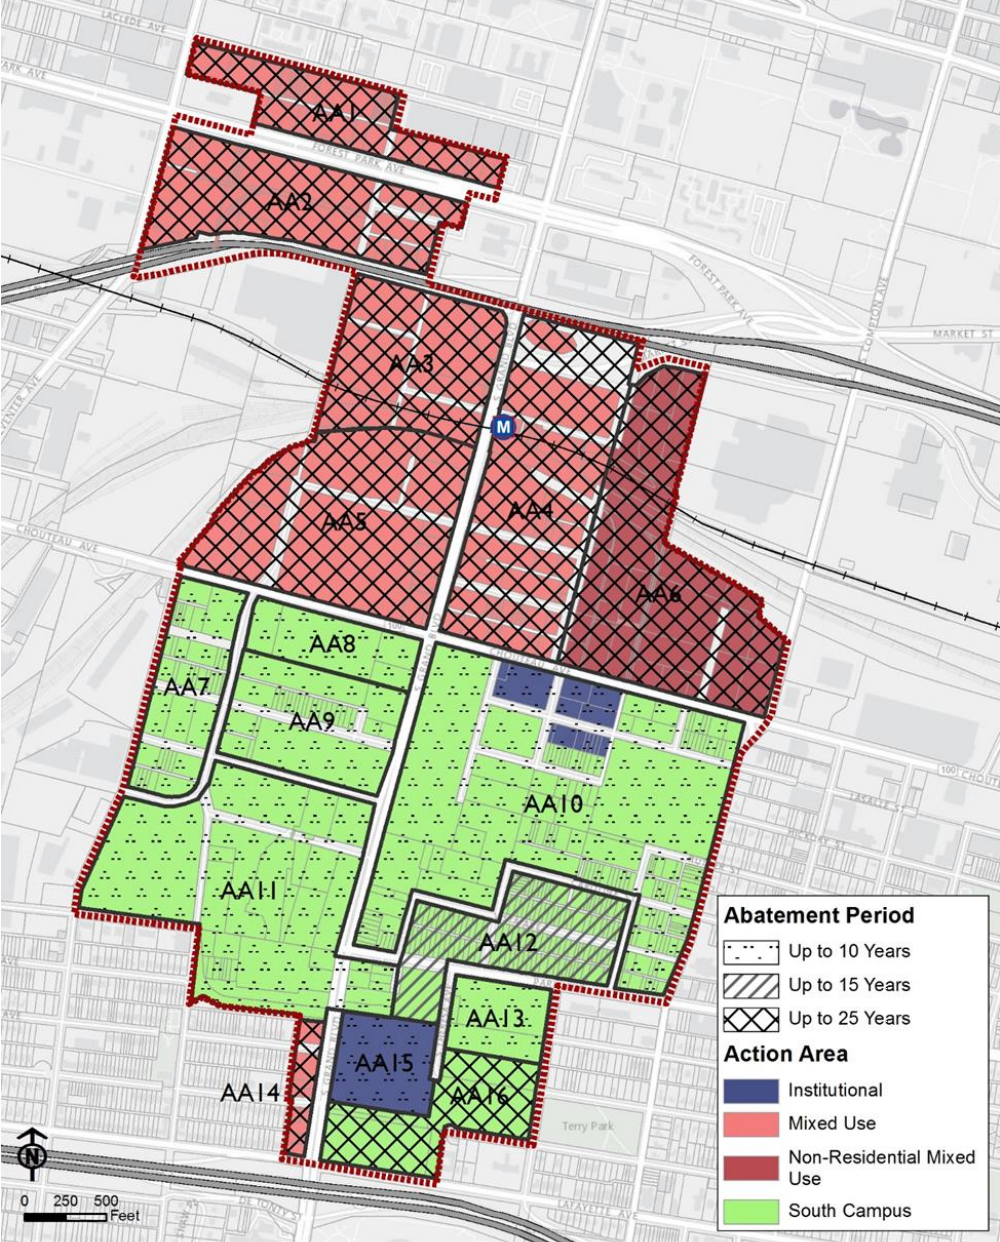 Midtown 353 Redevelopment Plan_abatement period